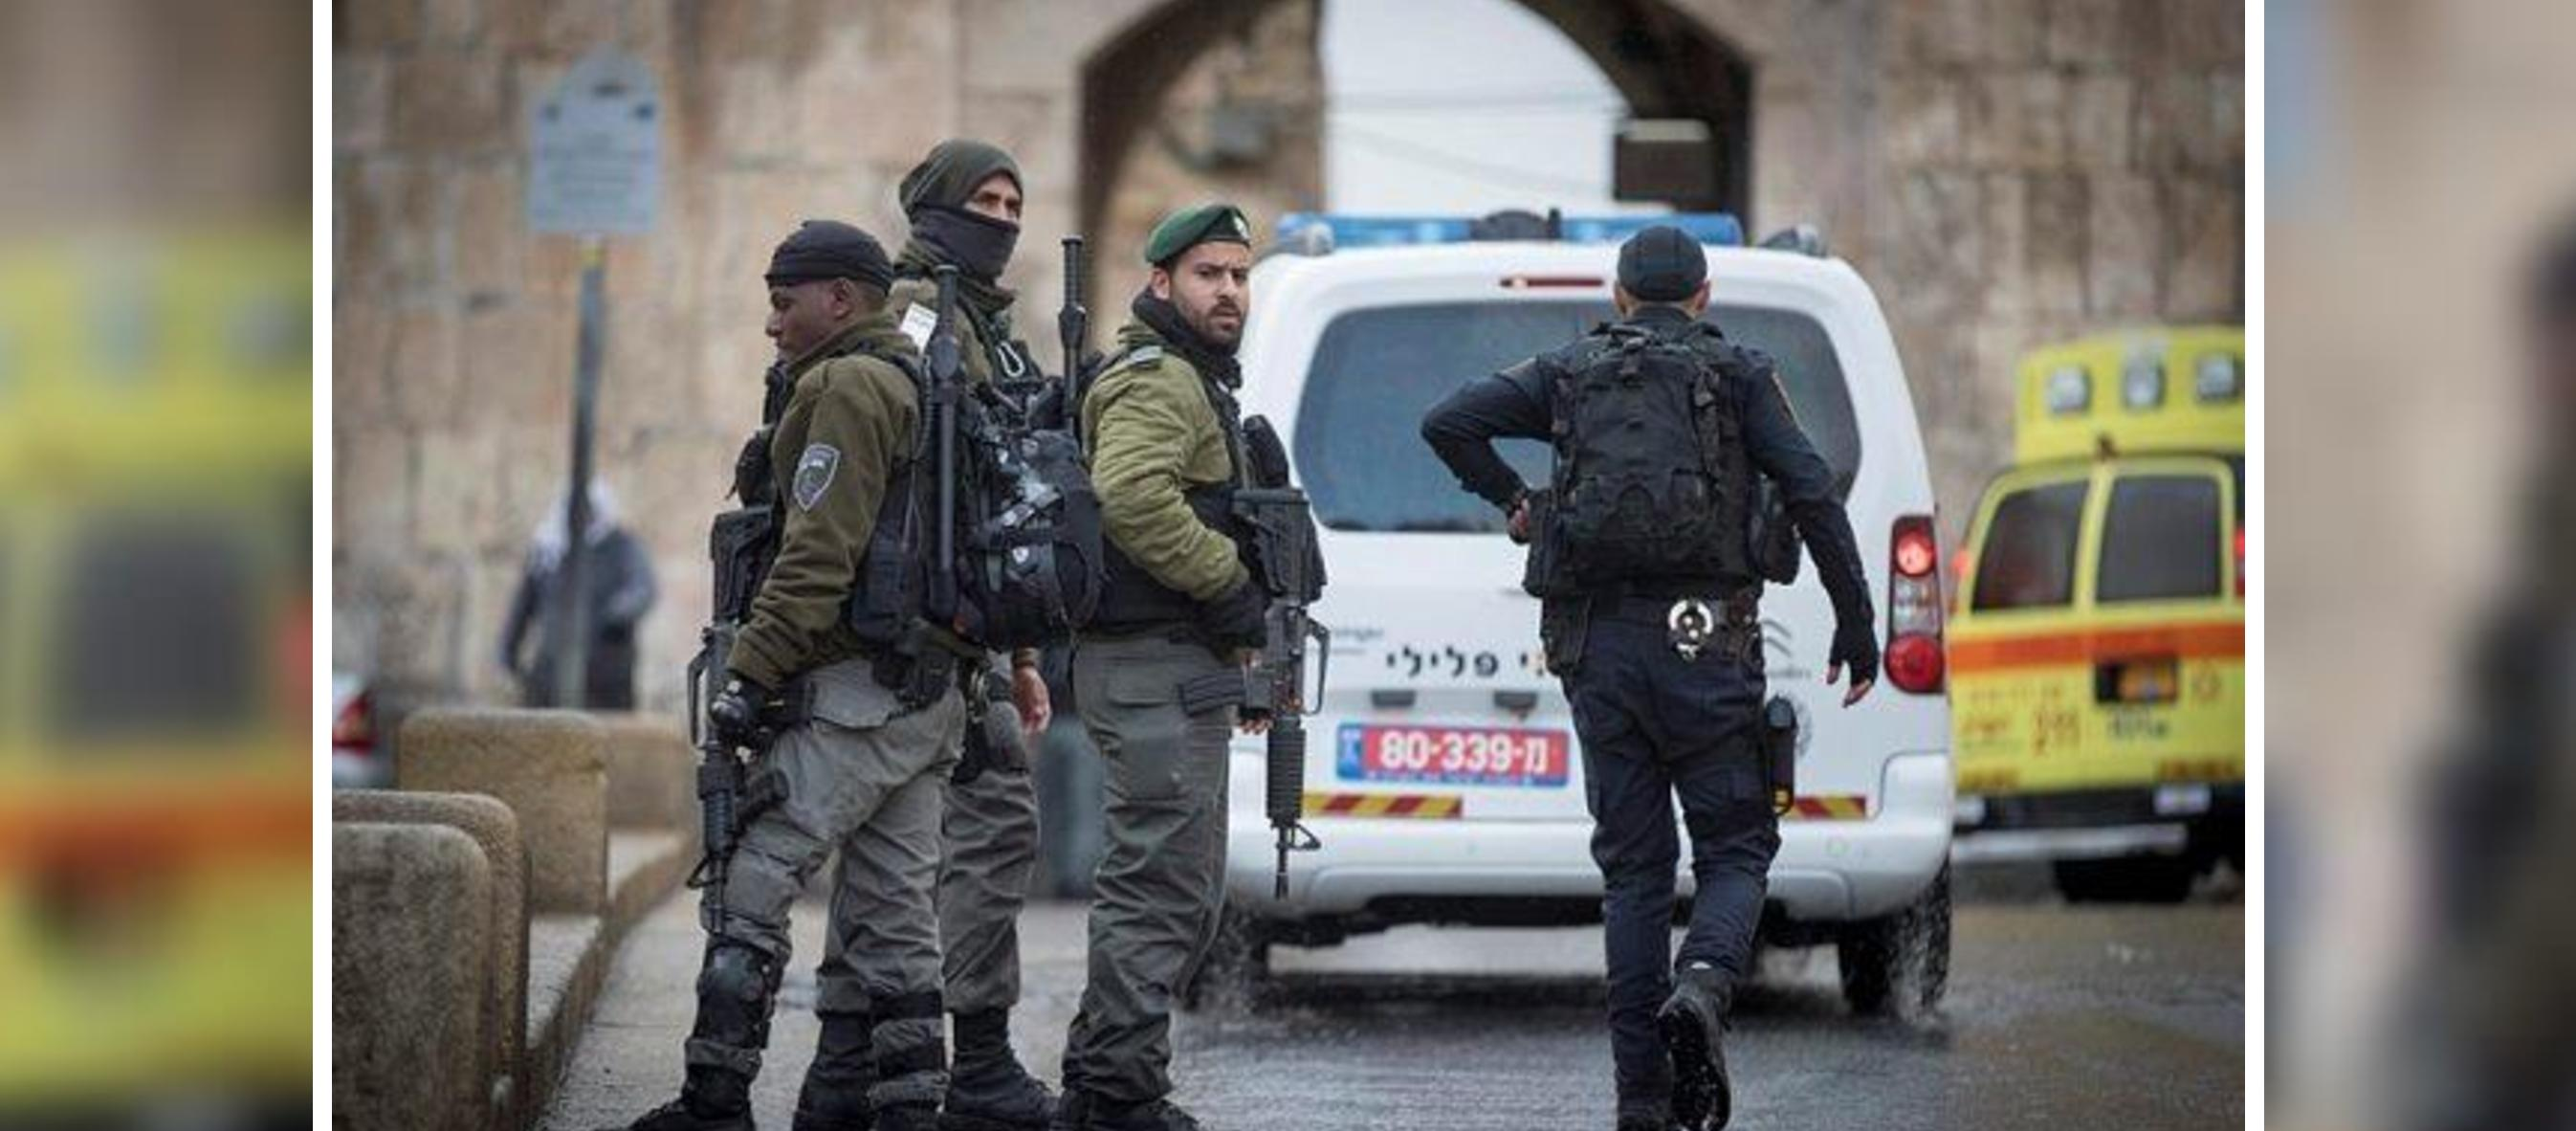 Palestinian terrorist stabs Israeli officer in Jerusalem attack